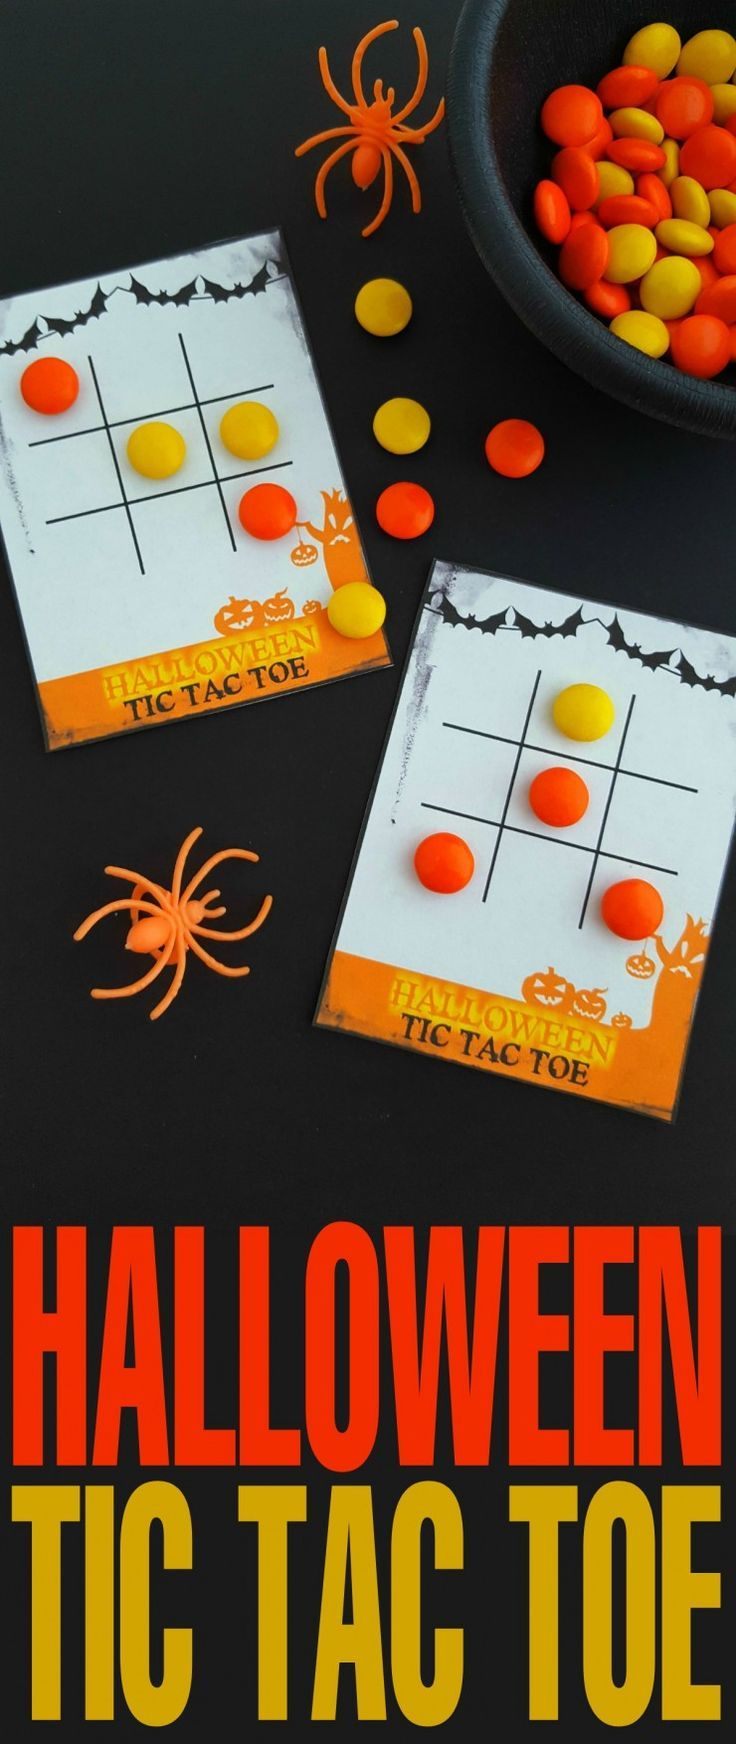 These free printable Halloween Tic Tac Toe cards are super fun and just the right amount of spooky, don't you think? Print them off and package them up with candy for a fun classroom treat or simply print off and enjoy playing at home!